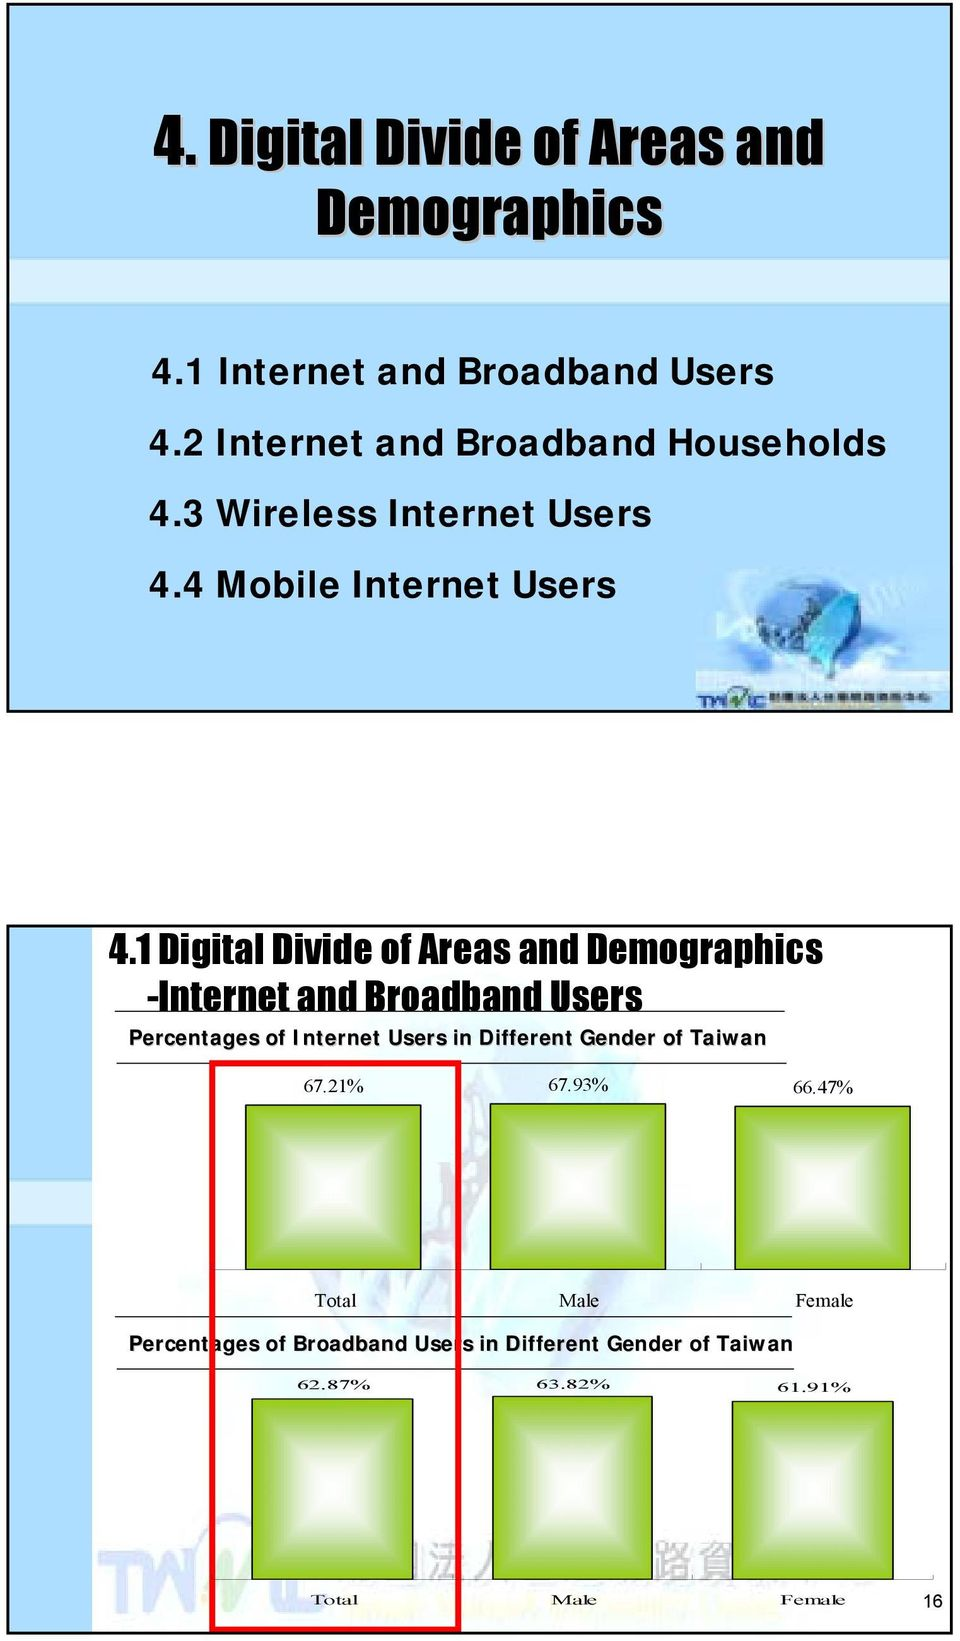 1 Digital Divide of Areas and Demographics -Internet and Broadband Users Percentages of Internet Users in